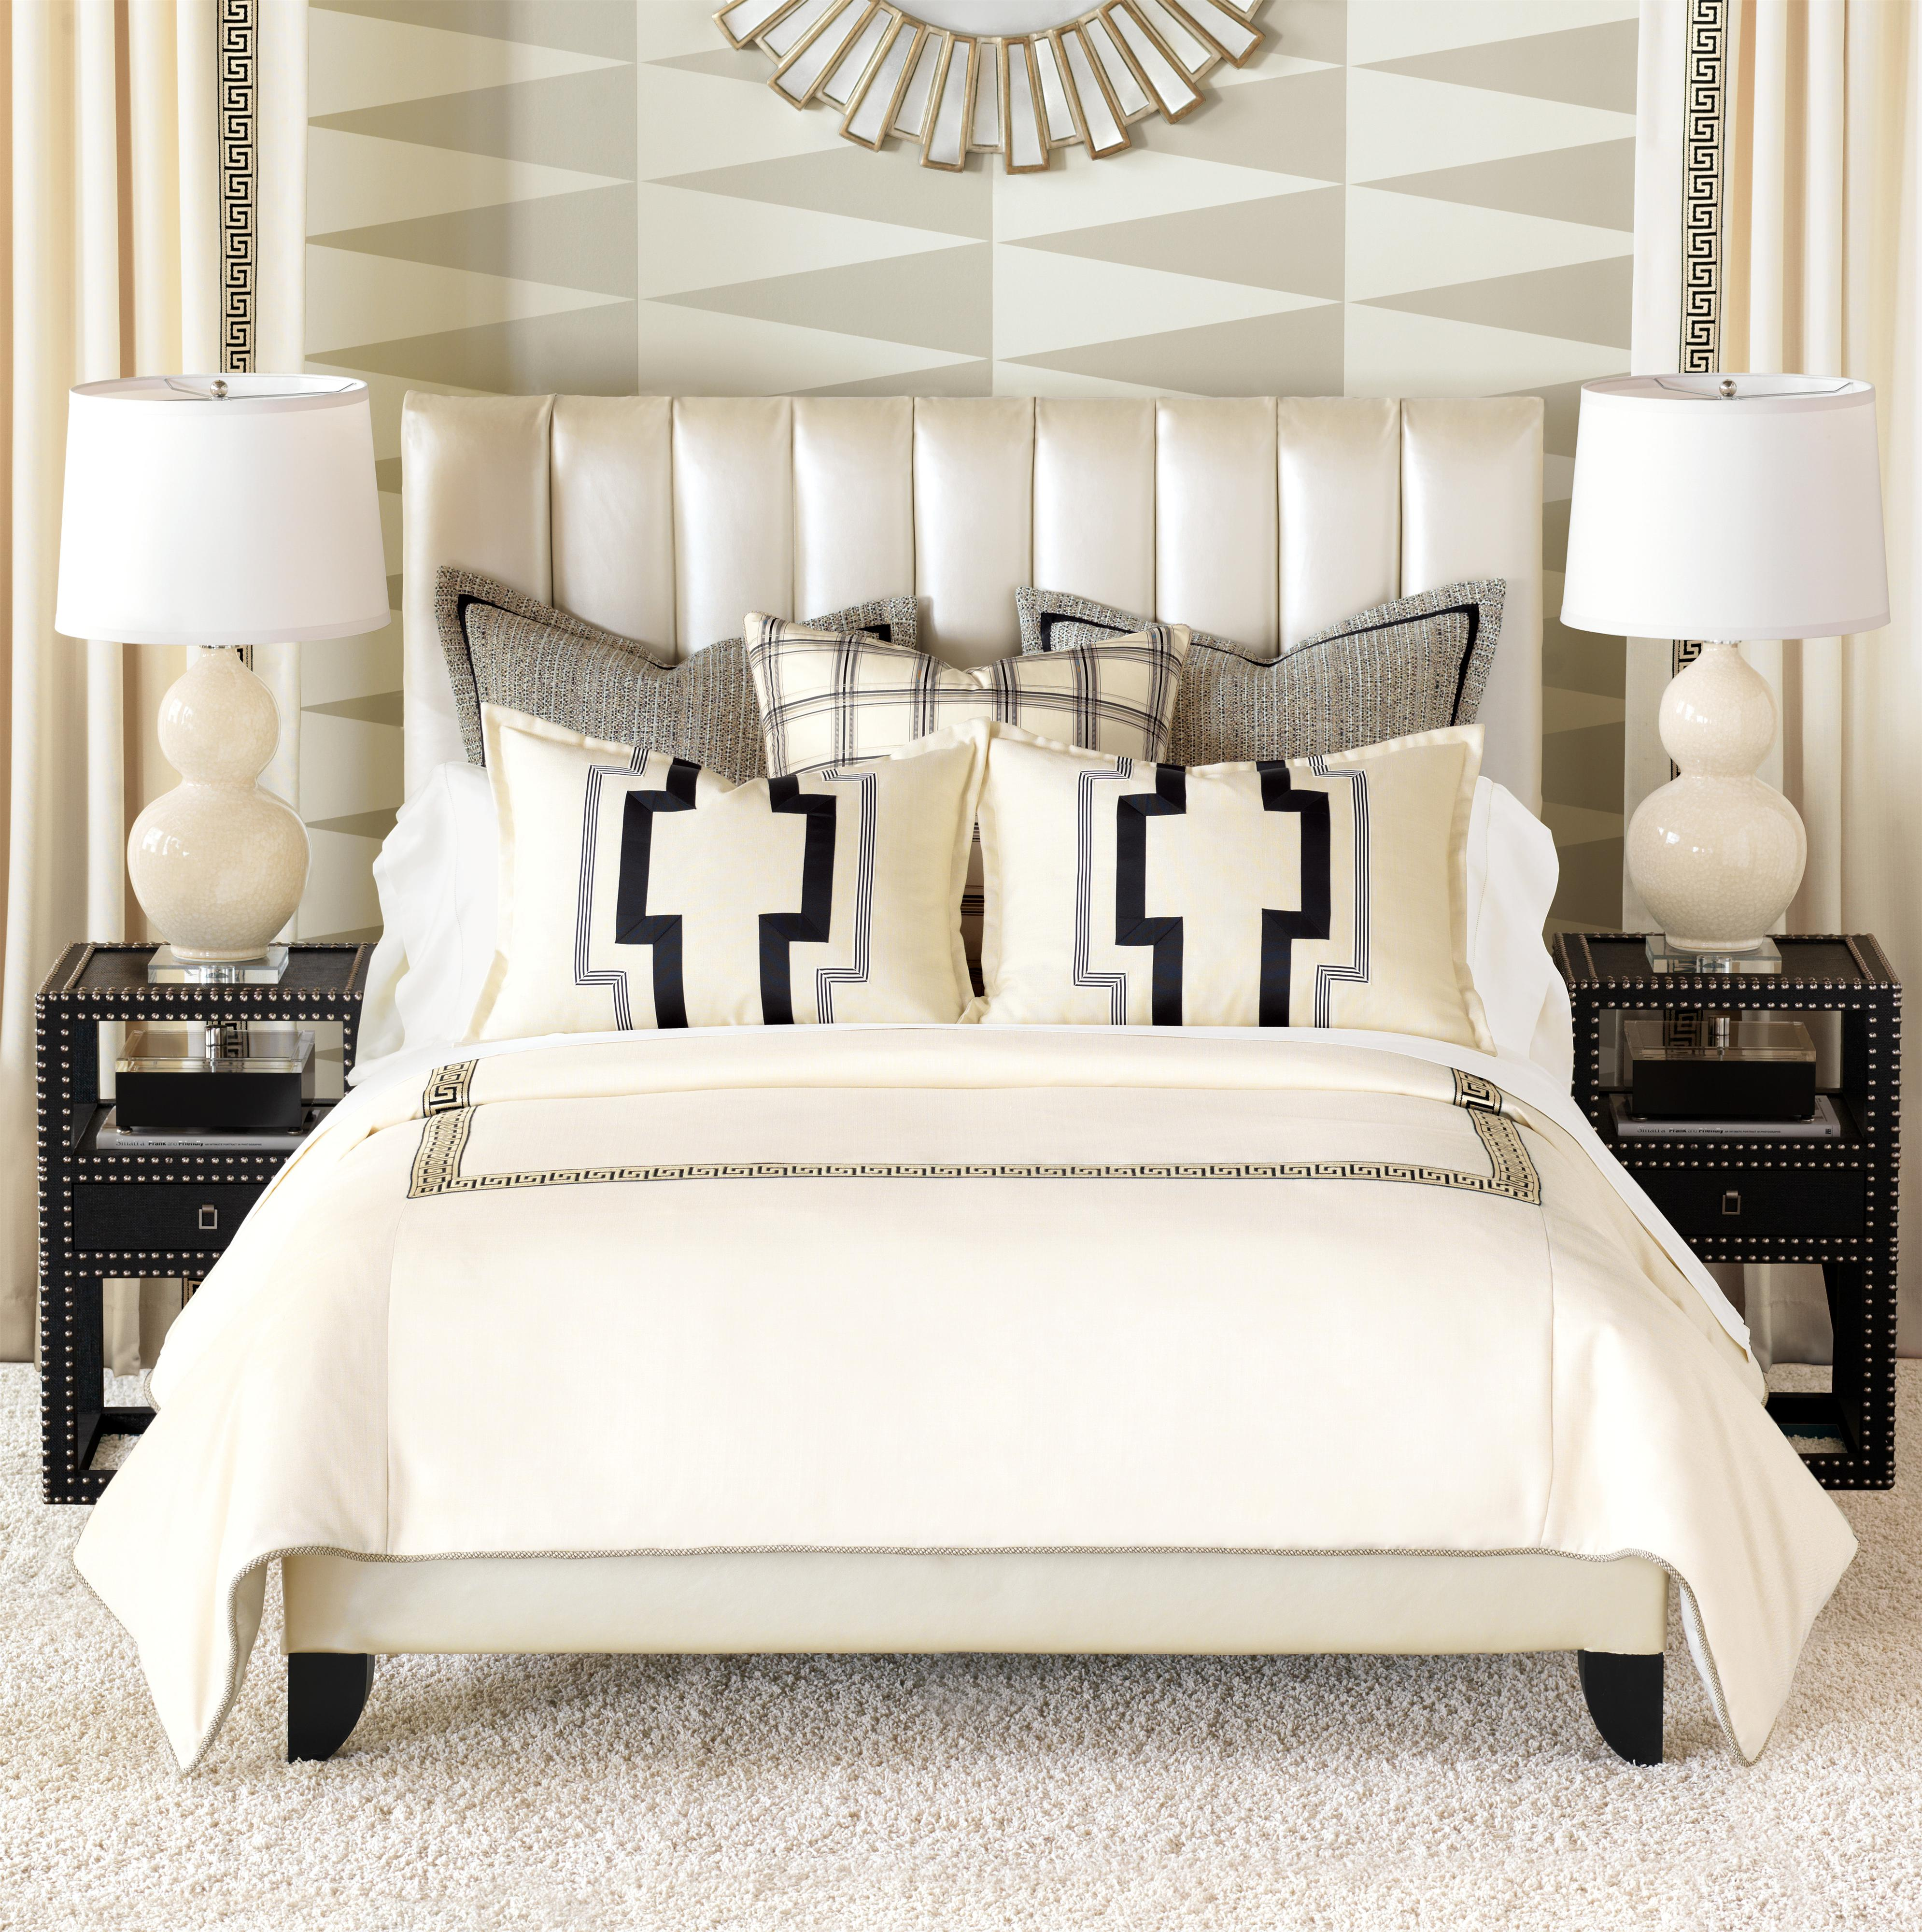 Abernathy Queen Duvet Cover by Eastern Accents at Alison Craig Home Furnishings